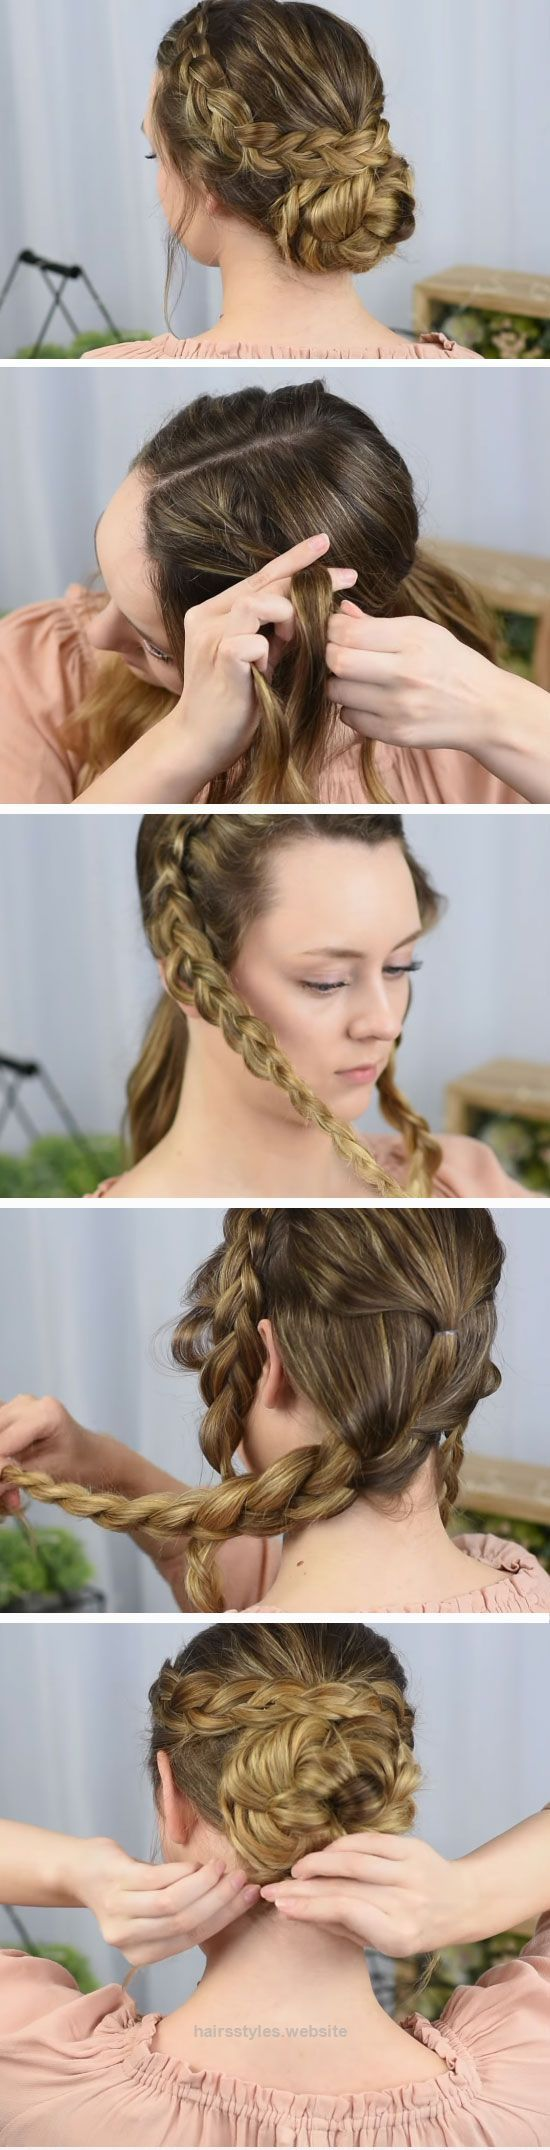 Wonderful Dutch Braided Up-do | Quick DIY Prom Hairstyles for Medium Hair | Quick and Easy Homecoming Hairstyles for Long Hair  The post  Dutch Braided Up-do | Quick DIY Prom Hairstyles for Mediu ..